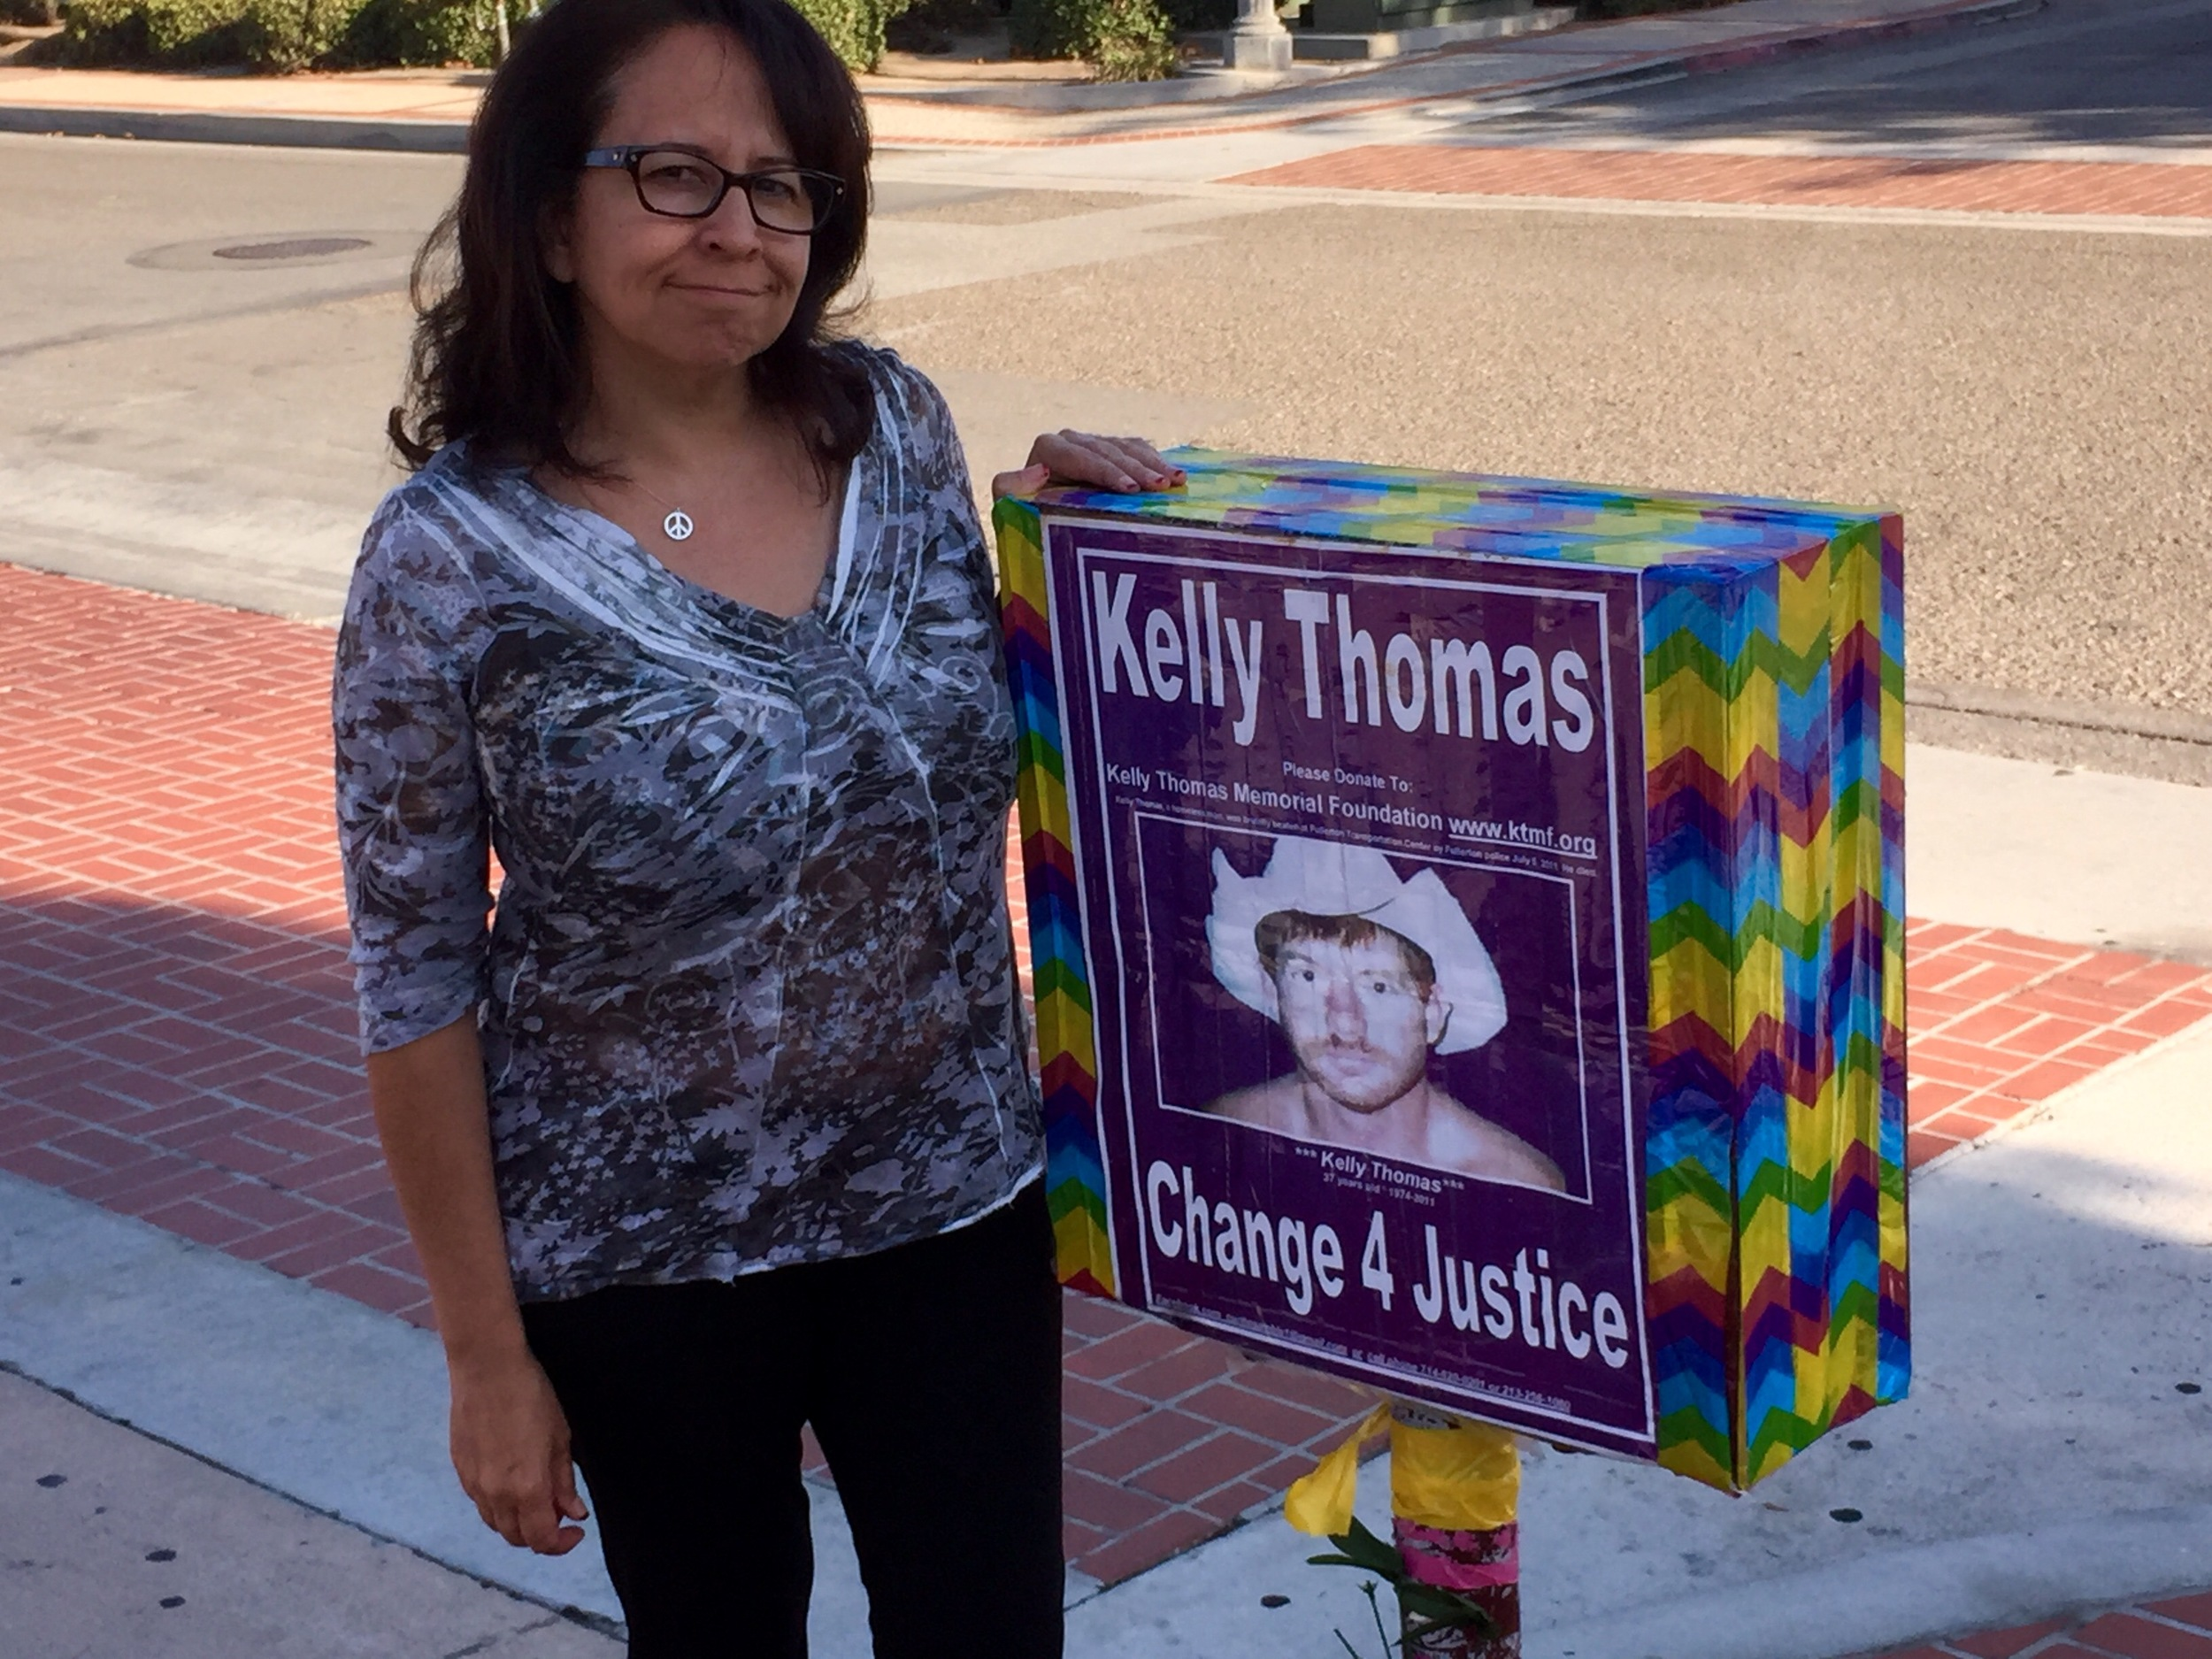 Dolores Sanchez at Kelly Corner, Fullerton, CA. The corner is the site of the death of Kelly at the hands of Fullerton Police.